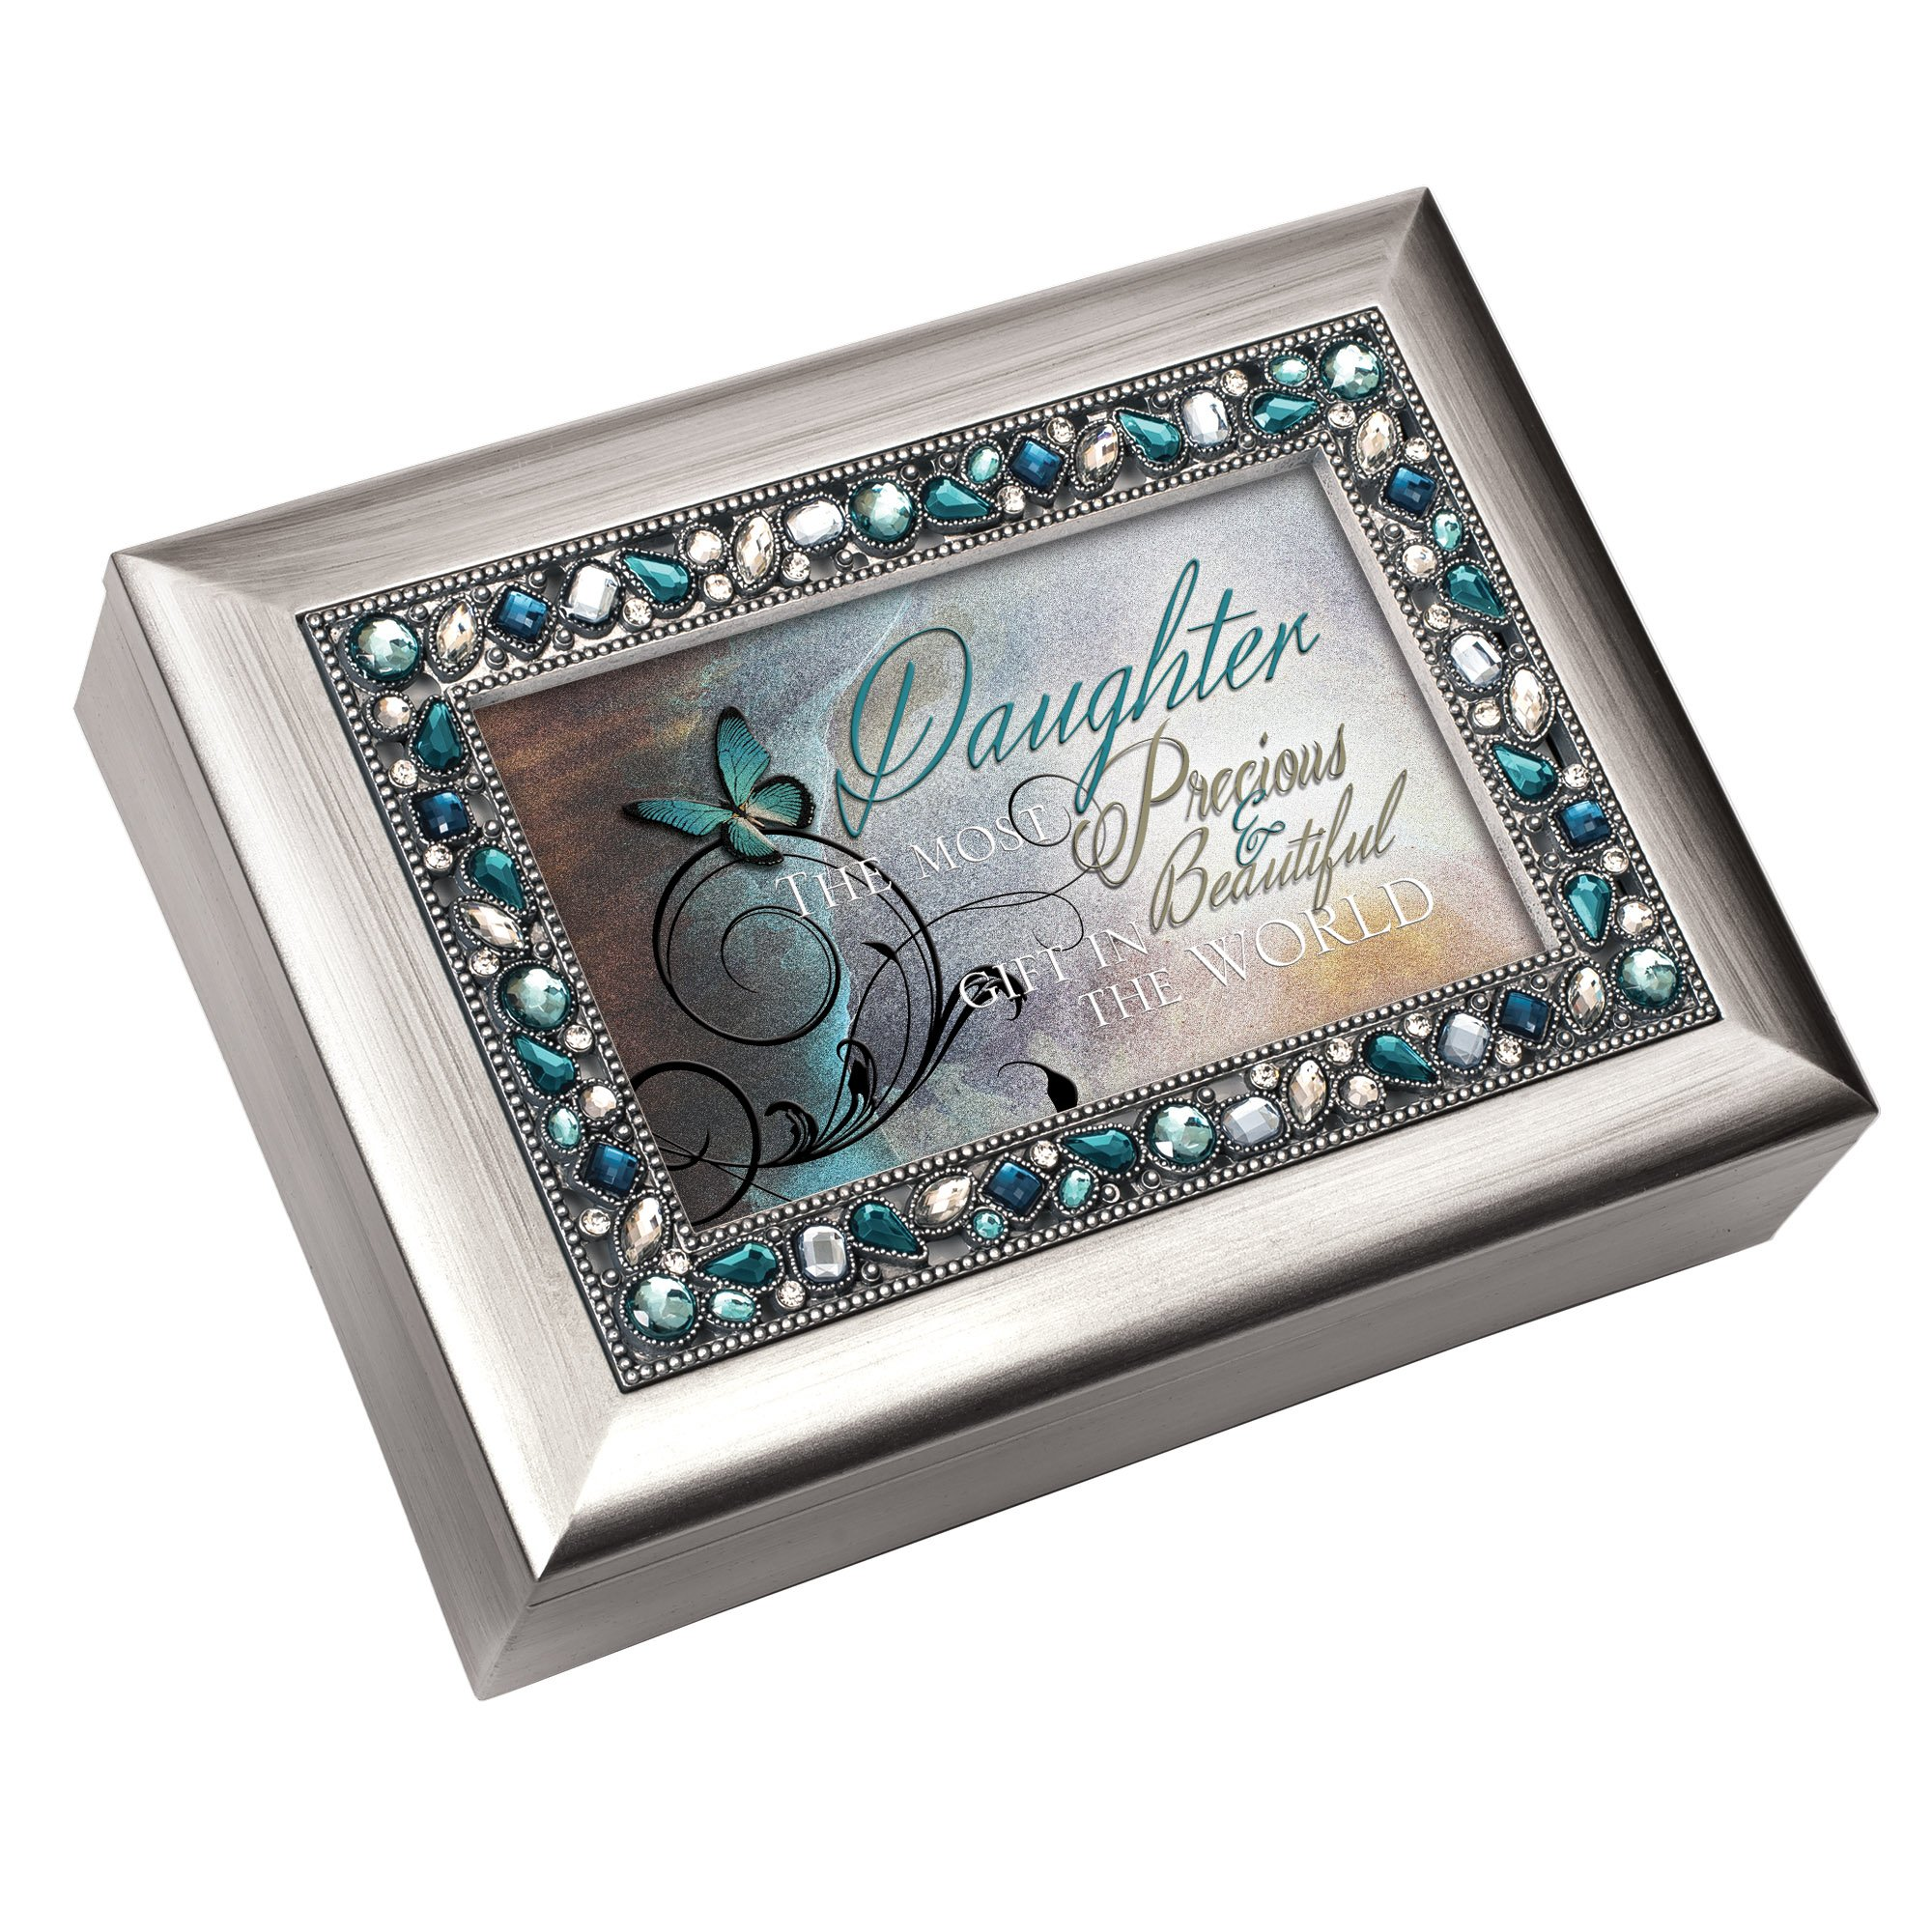 Cottage Garden Daughter Most Precious Gift Brushed Silvertone Jewelry Music Box Plays You Light Up My Life